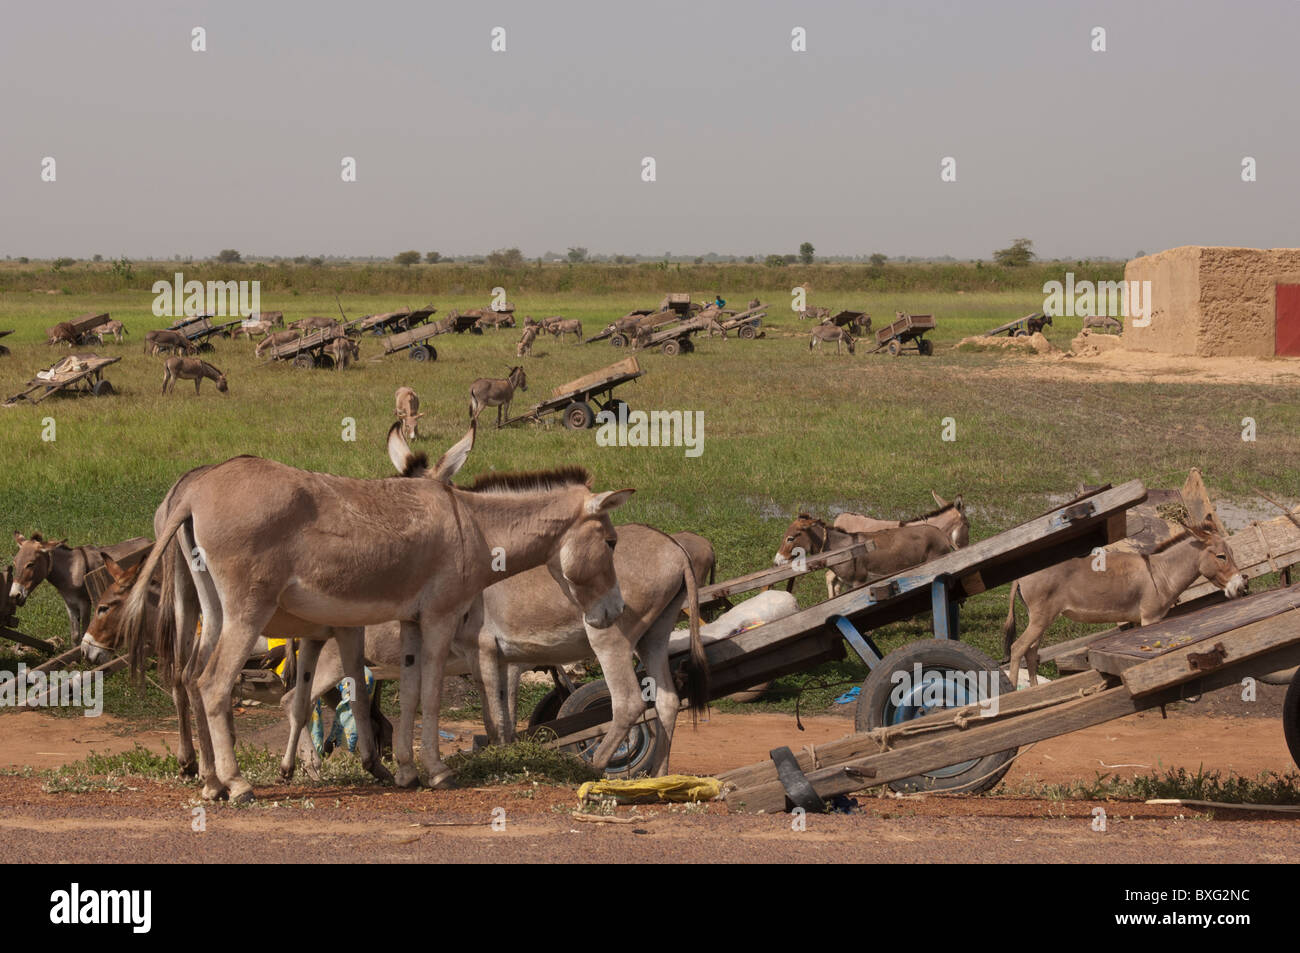 Parked carts and resting donkeys near a weekly market of a village near Massina. Segou Region, Mali. - Stock Image